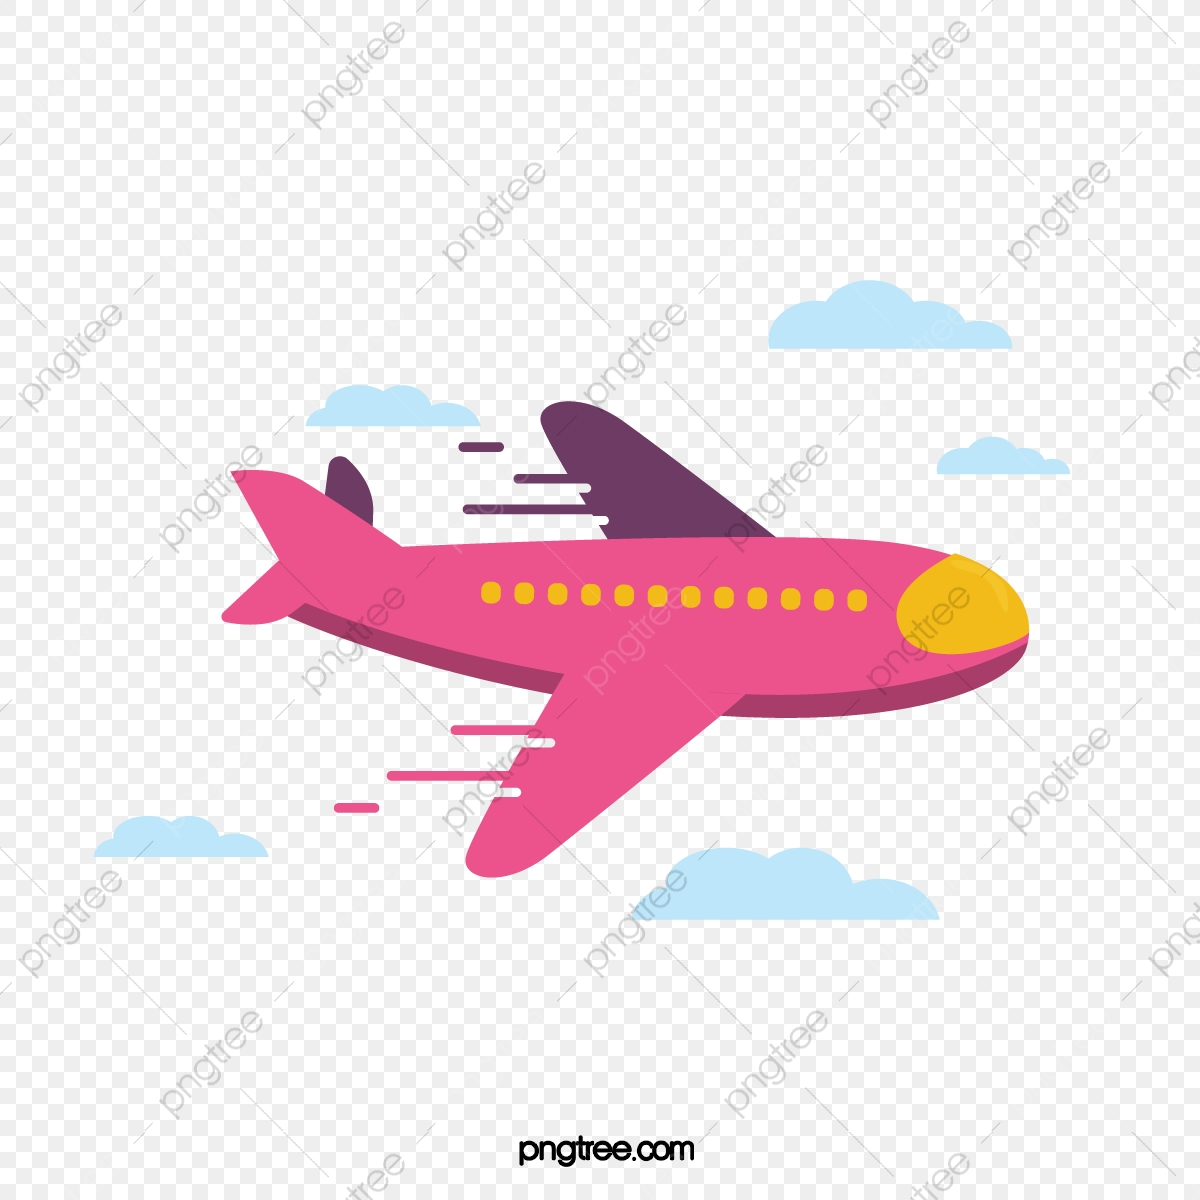 hight resolution of commercial use resource upgrade to premium plan and get license authorization upgradenow flat plane plane clipart